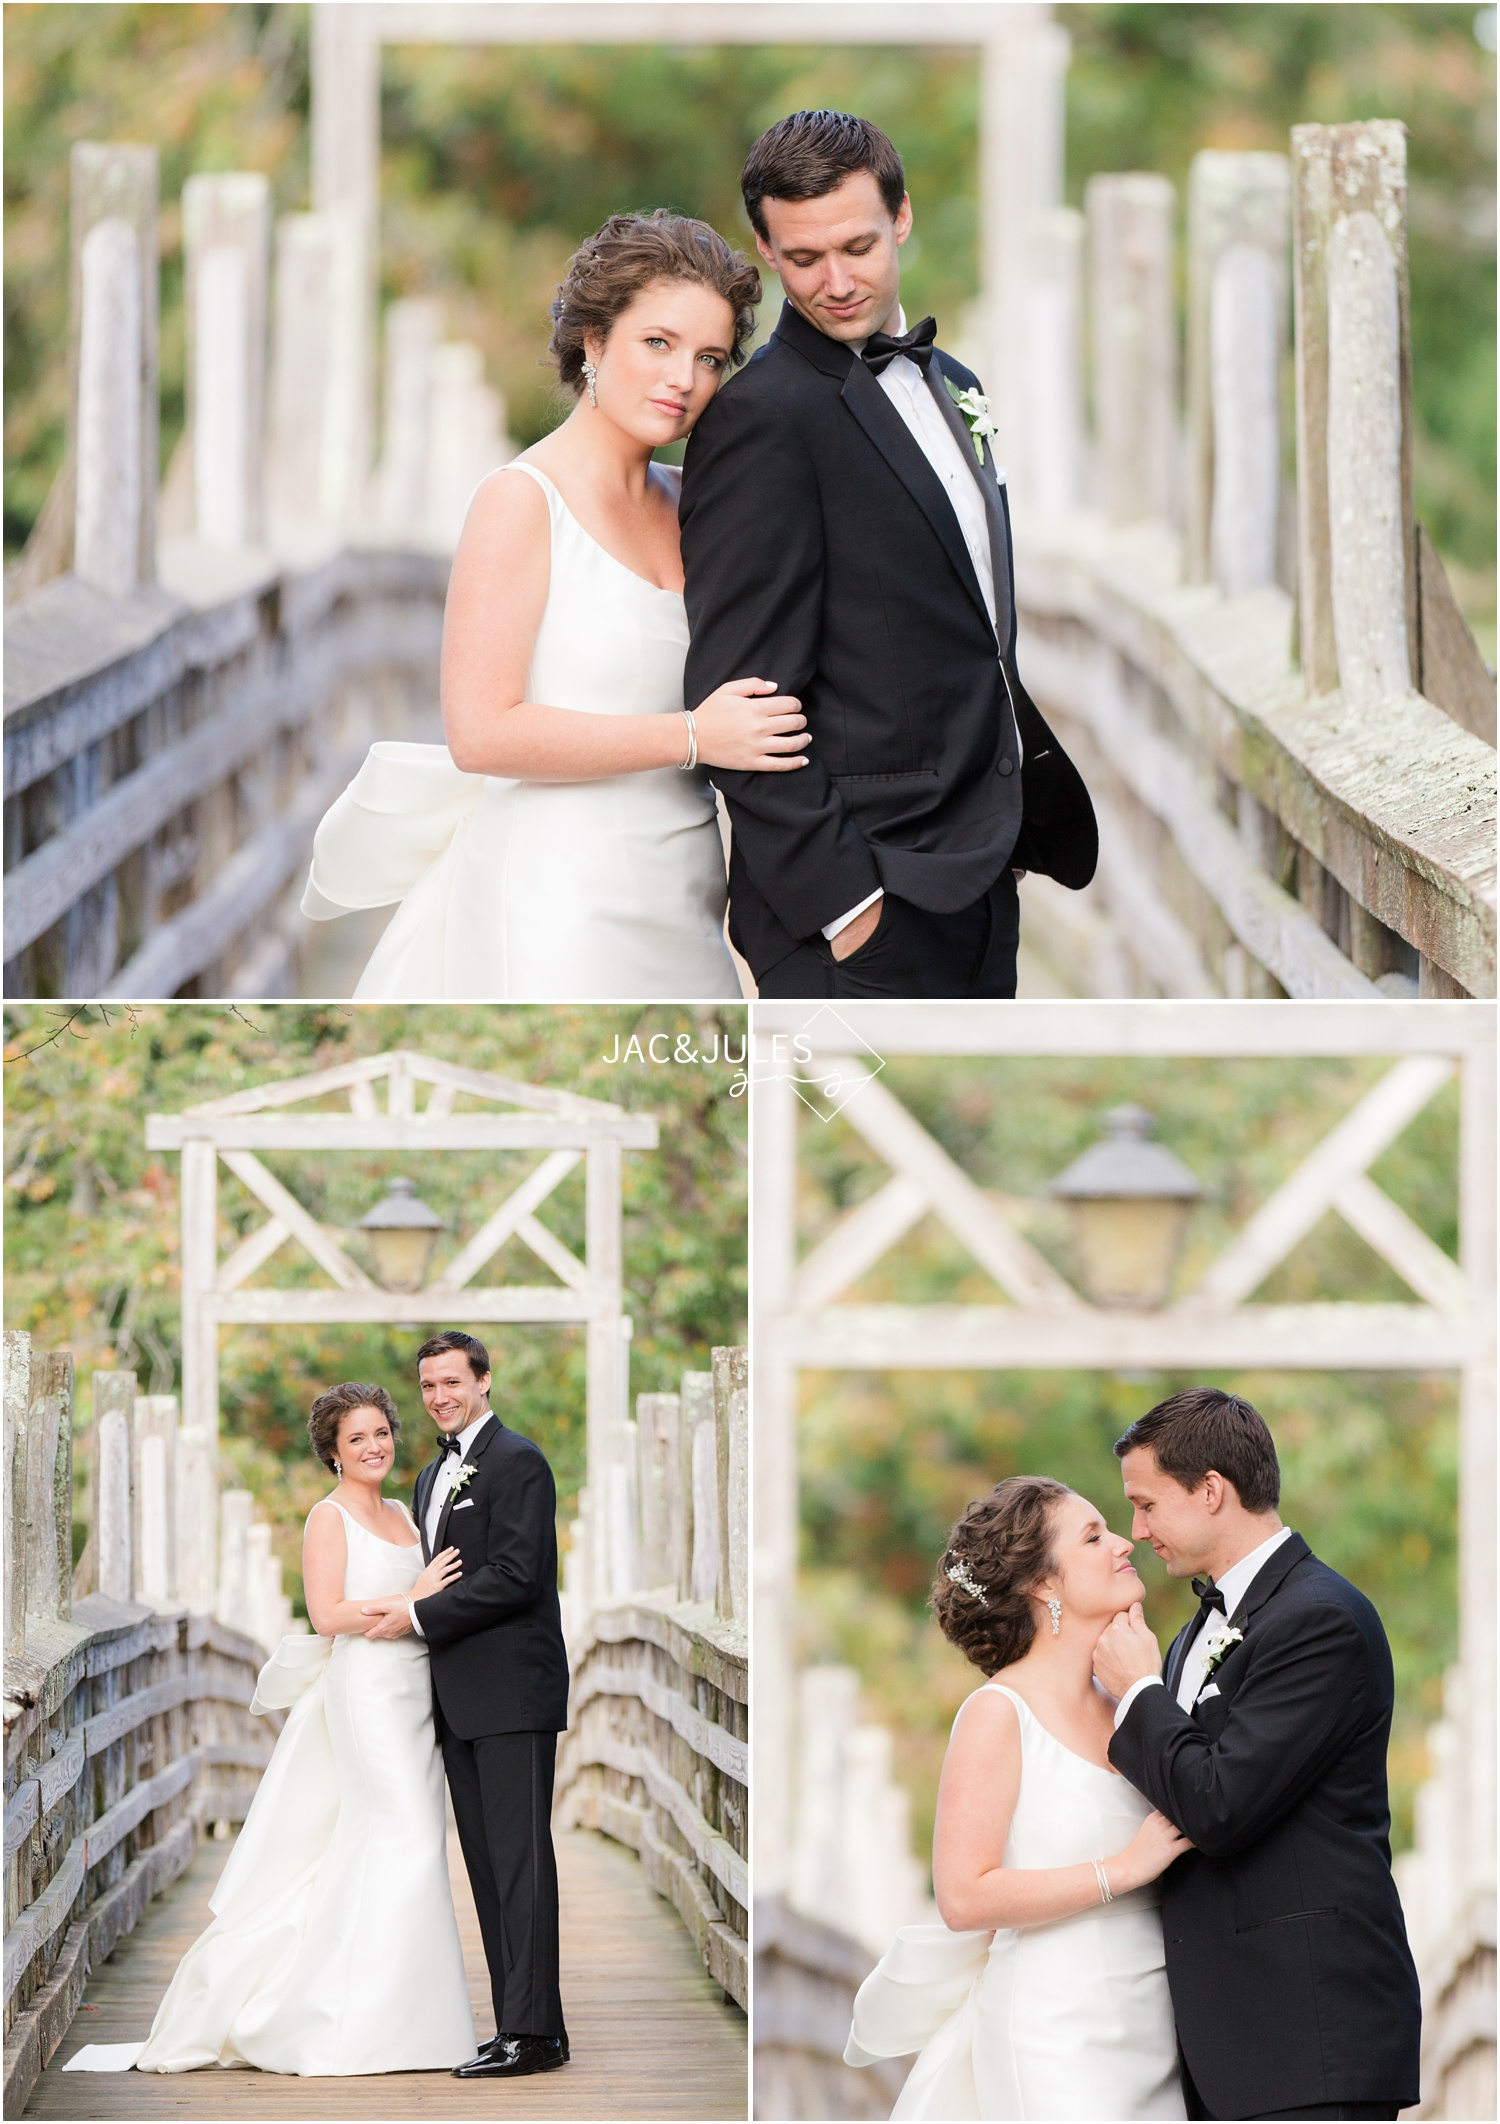 bridal party portraits on the wooden bridge at divine park in spring lake, nj.